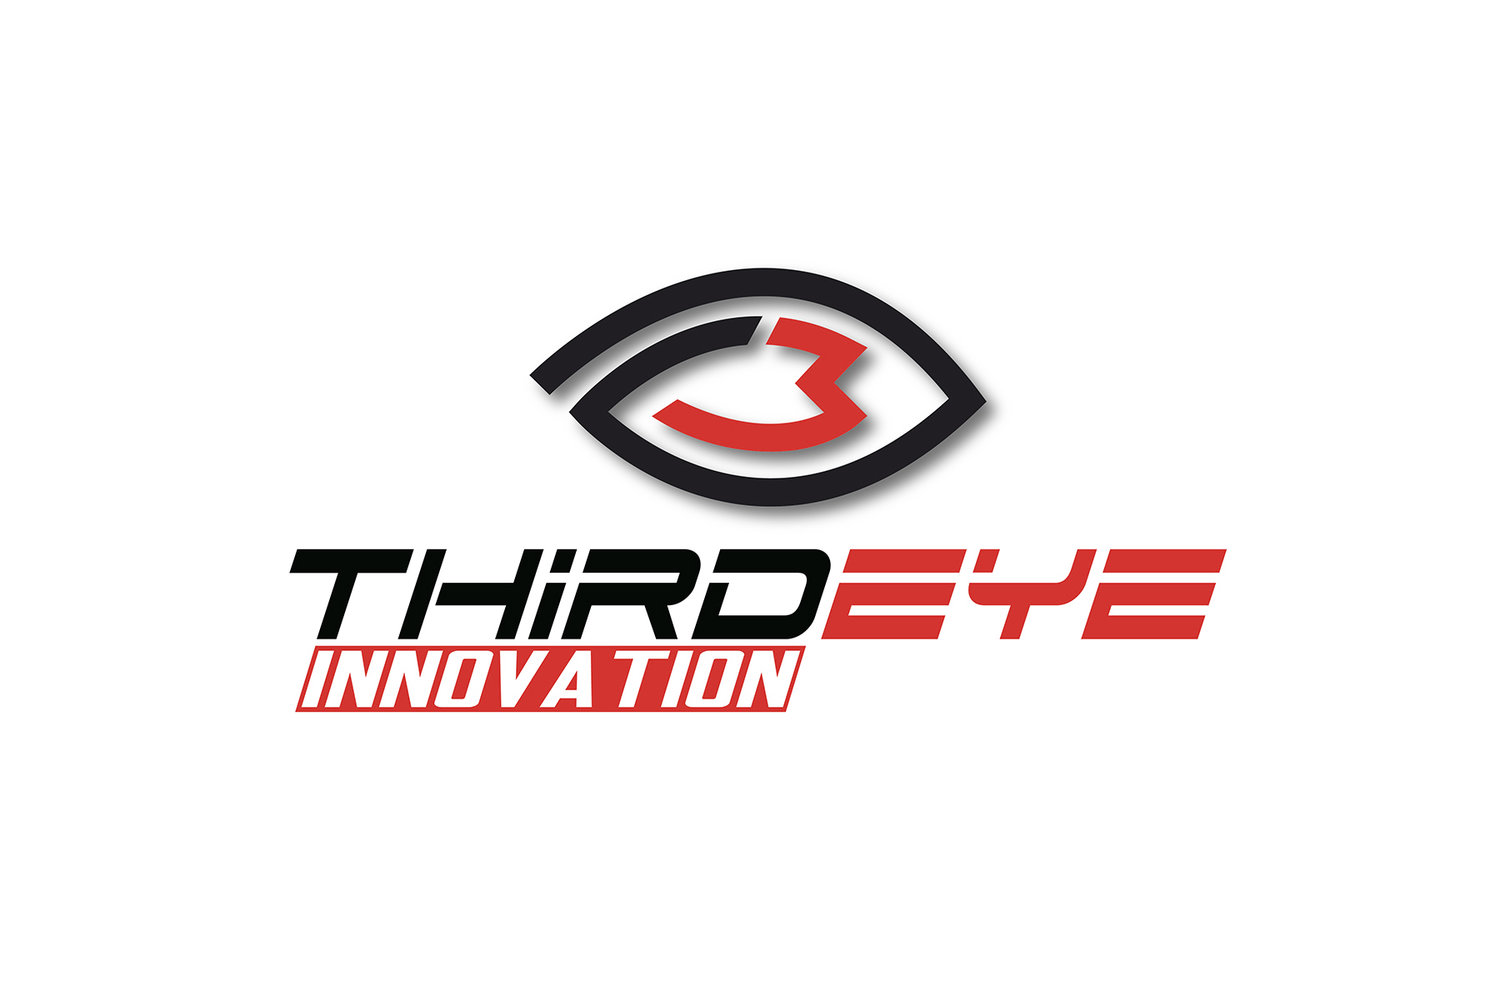 Third Eye Innovation